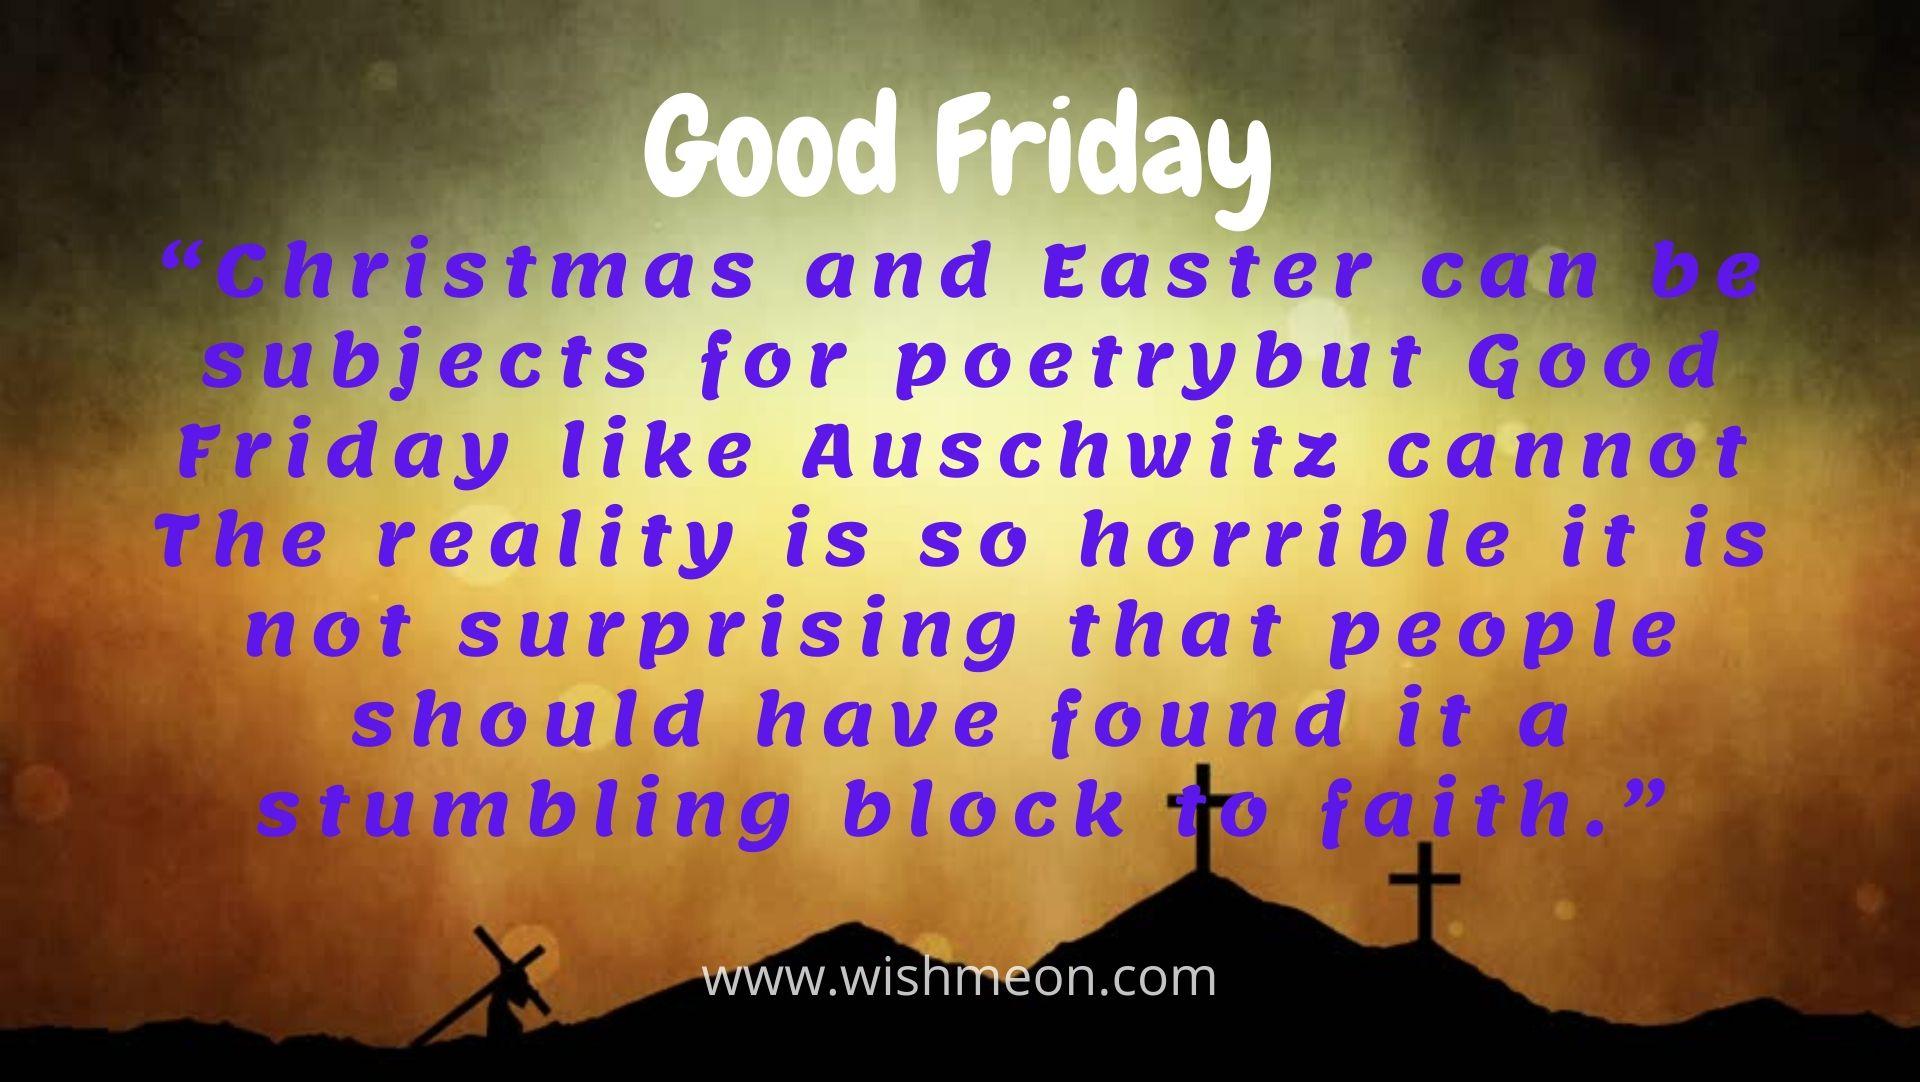 Christmas And Easter Can Be Subjects For Poetrybut